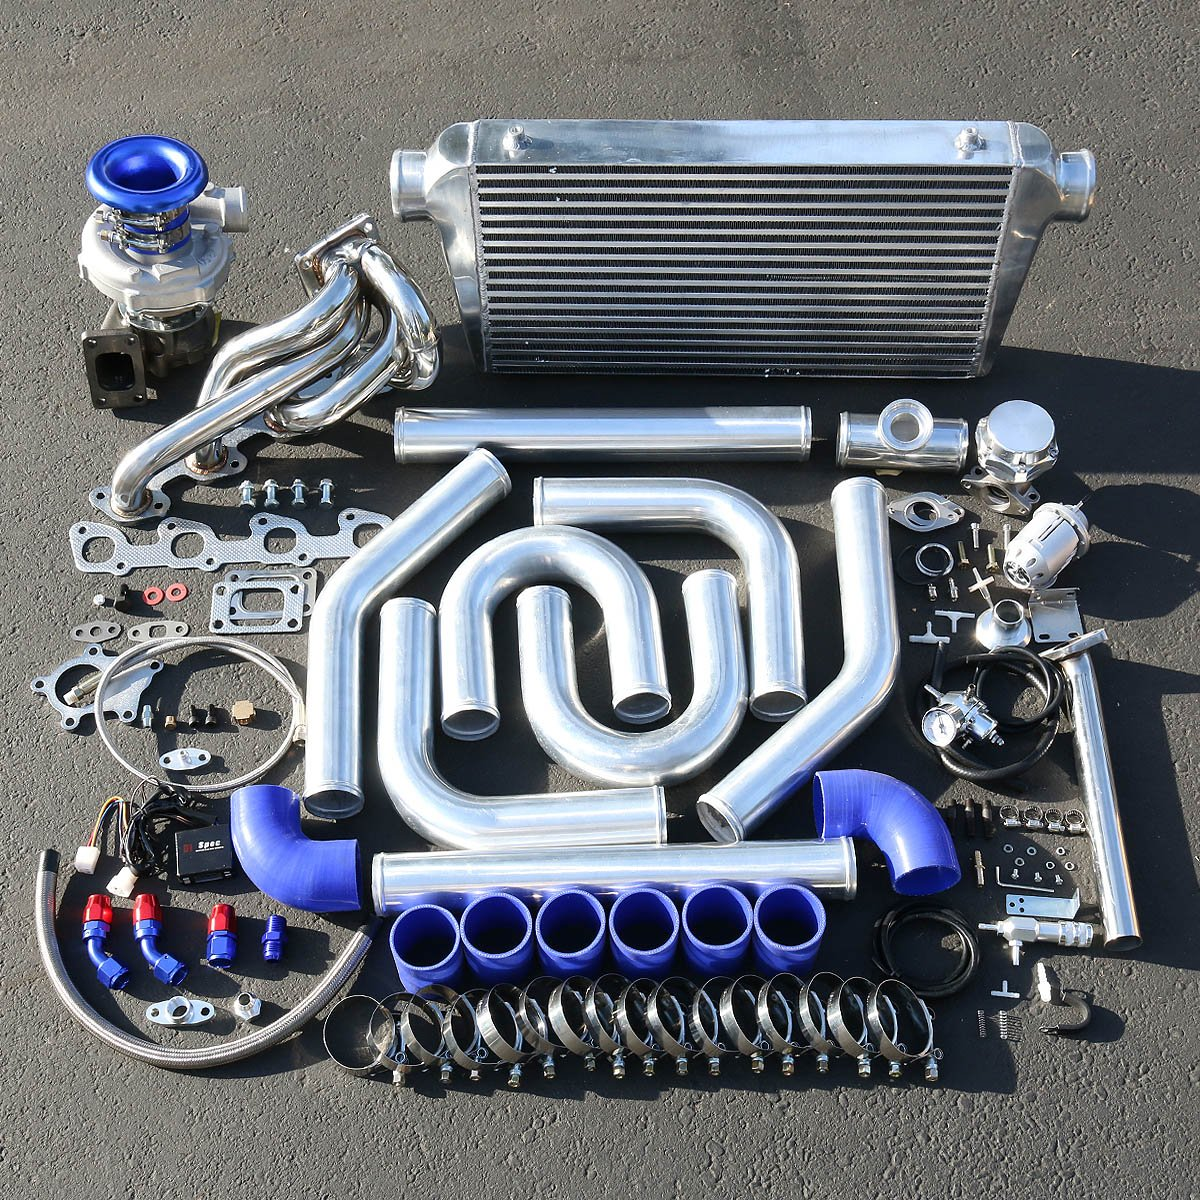 fitted part in another volvo performance turbo s parts gl log conversion cars performancedrive upgrade engine project